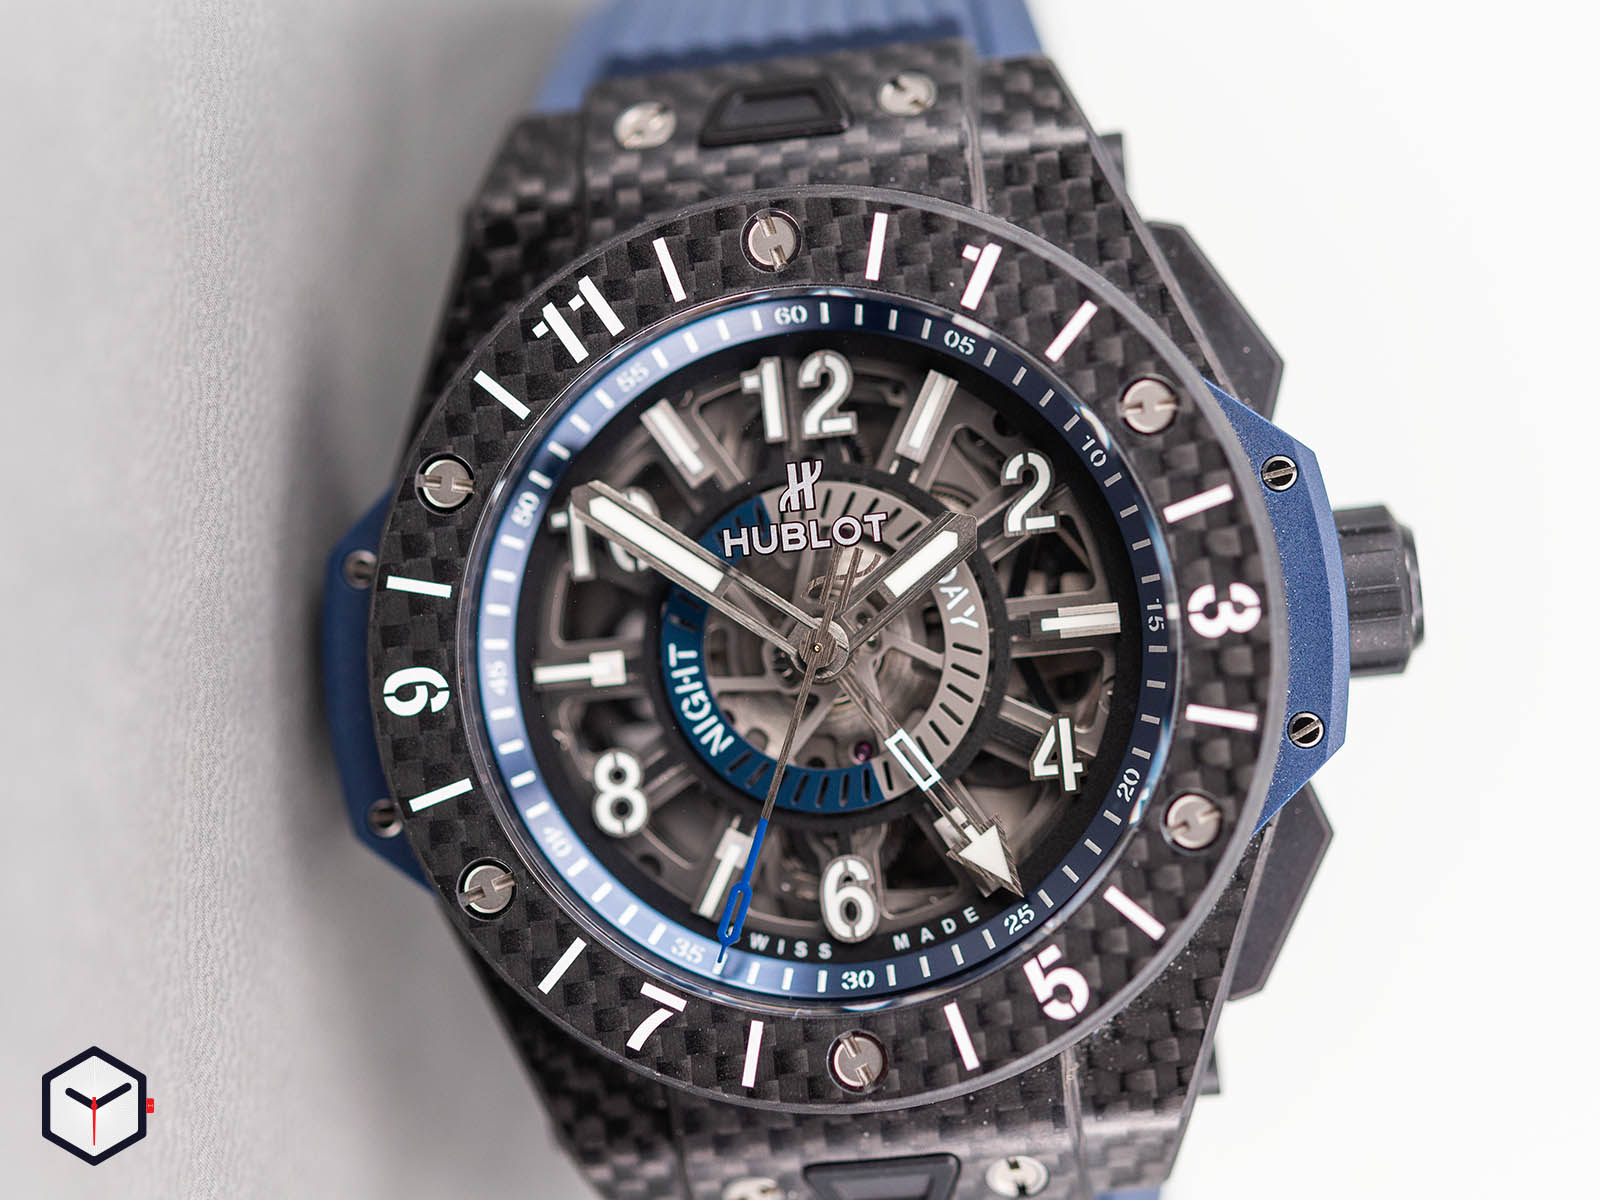 471-qx-7127-rx-hublot-big-bang-unico-gmt-carbon-2.jpg